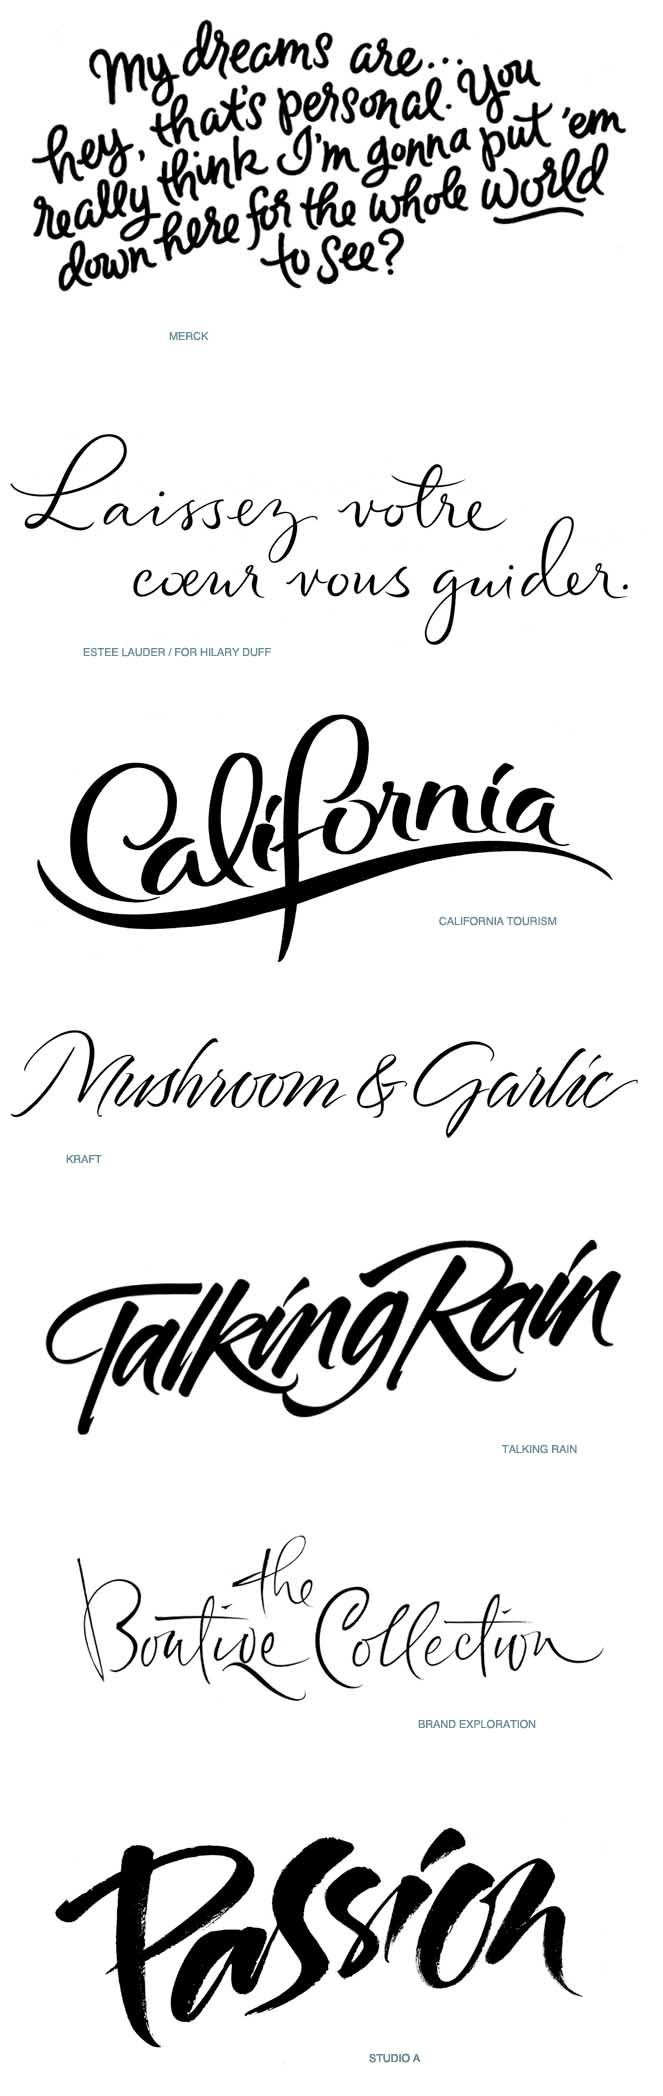 Fun new script fonts for 2015. I'm in love with the Boutiqe Collection.